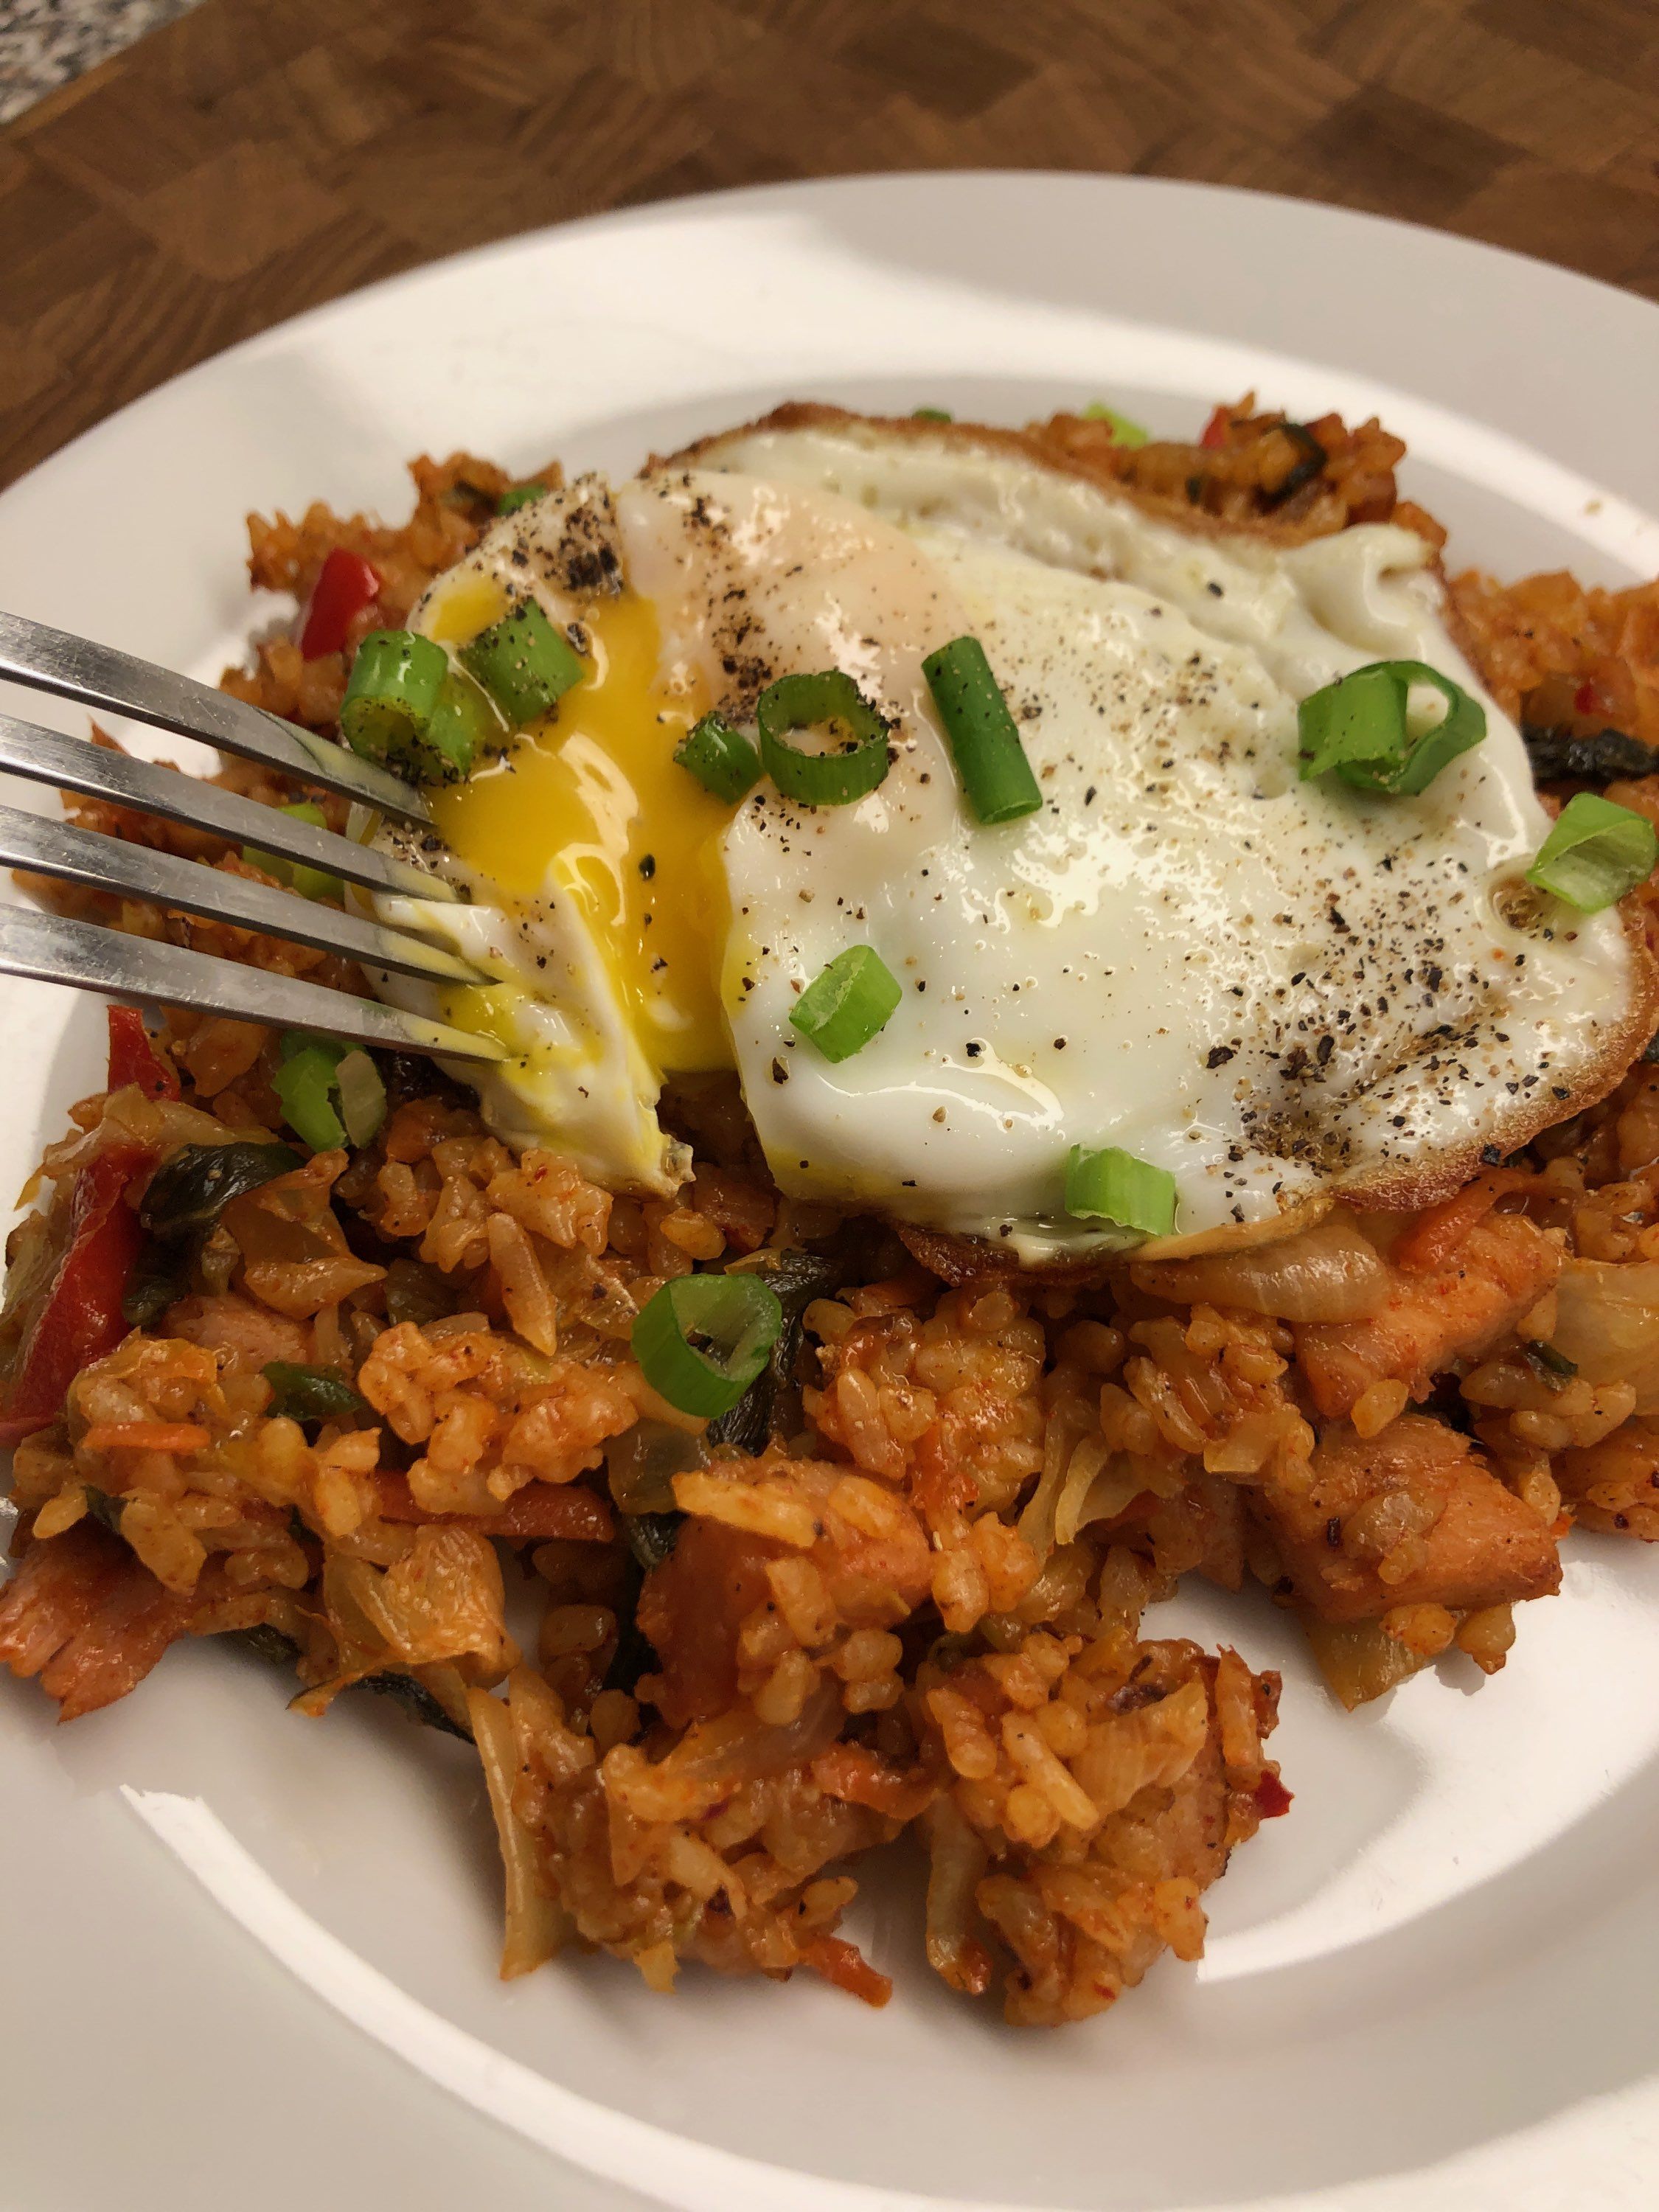 """This is a very basic kimchi fried rice, a humble dish made with leftover rice, kimchi, and usually a processed meat like Spam,"" says Diana71. ""In this recipe I used cubed ham and veggies I had in the fridge. Serve with a sunny side up egg over top if you like."""